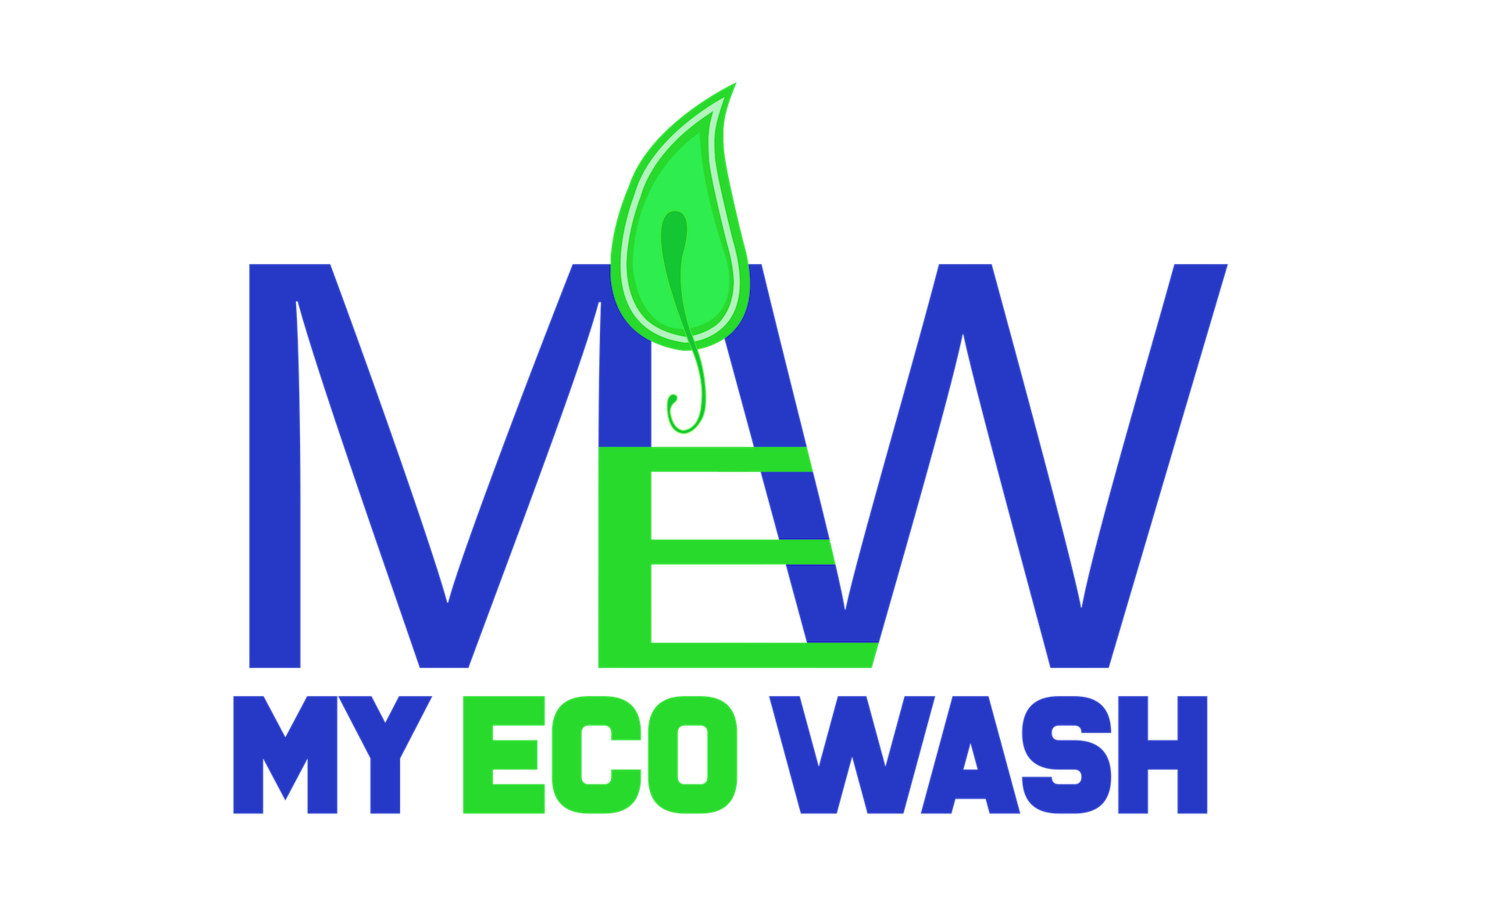 My Eco Wash